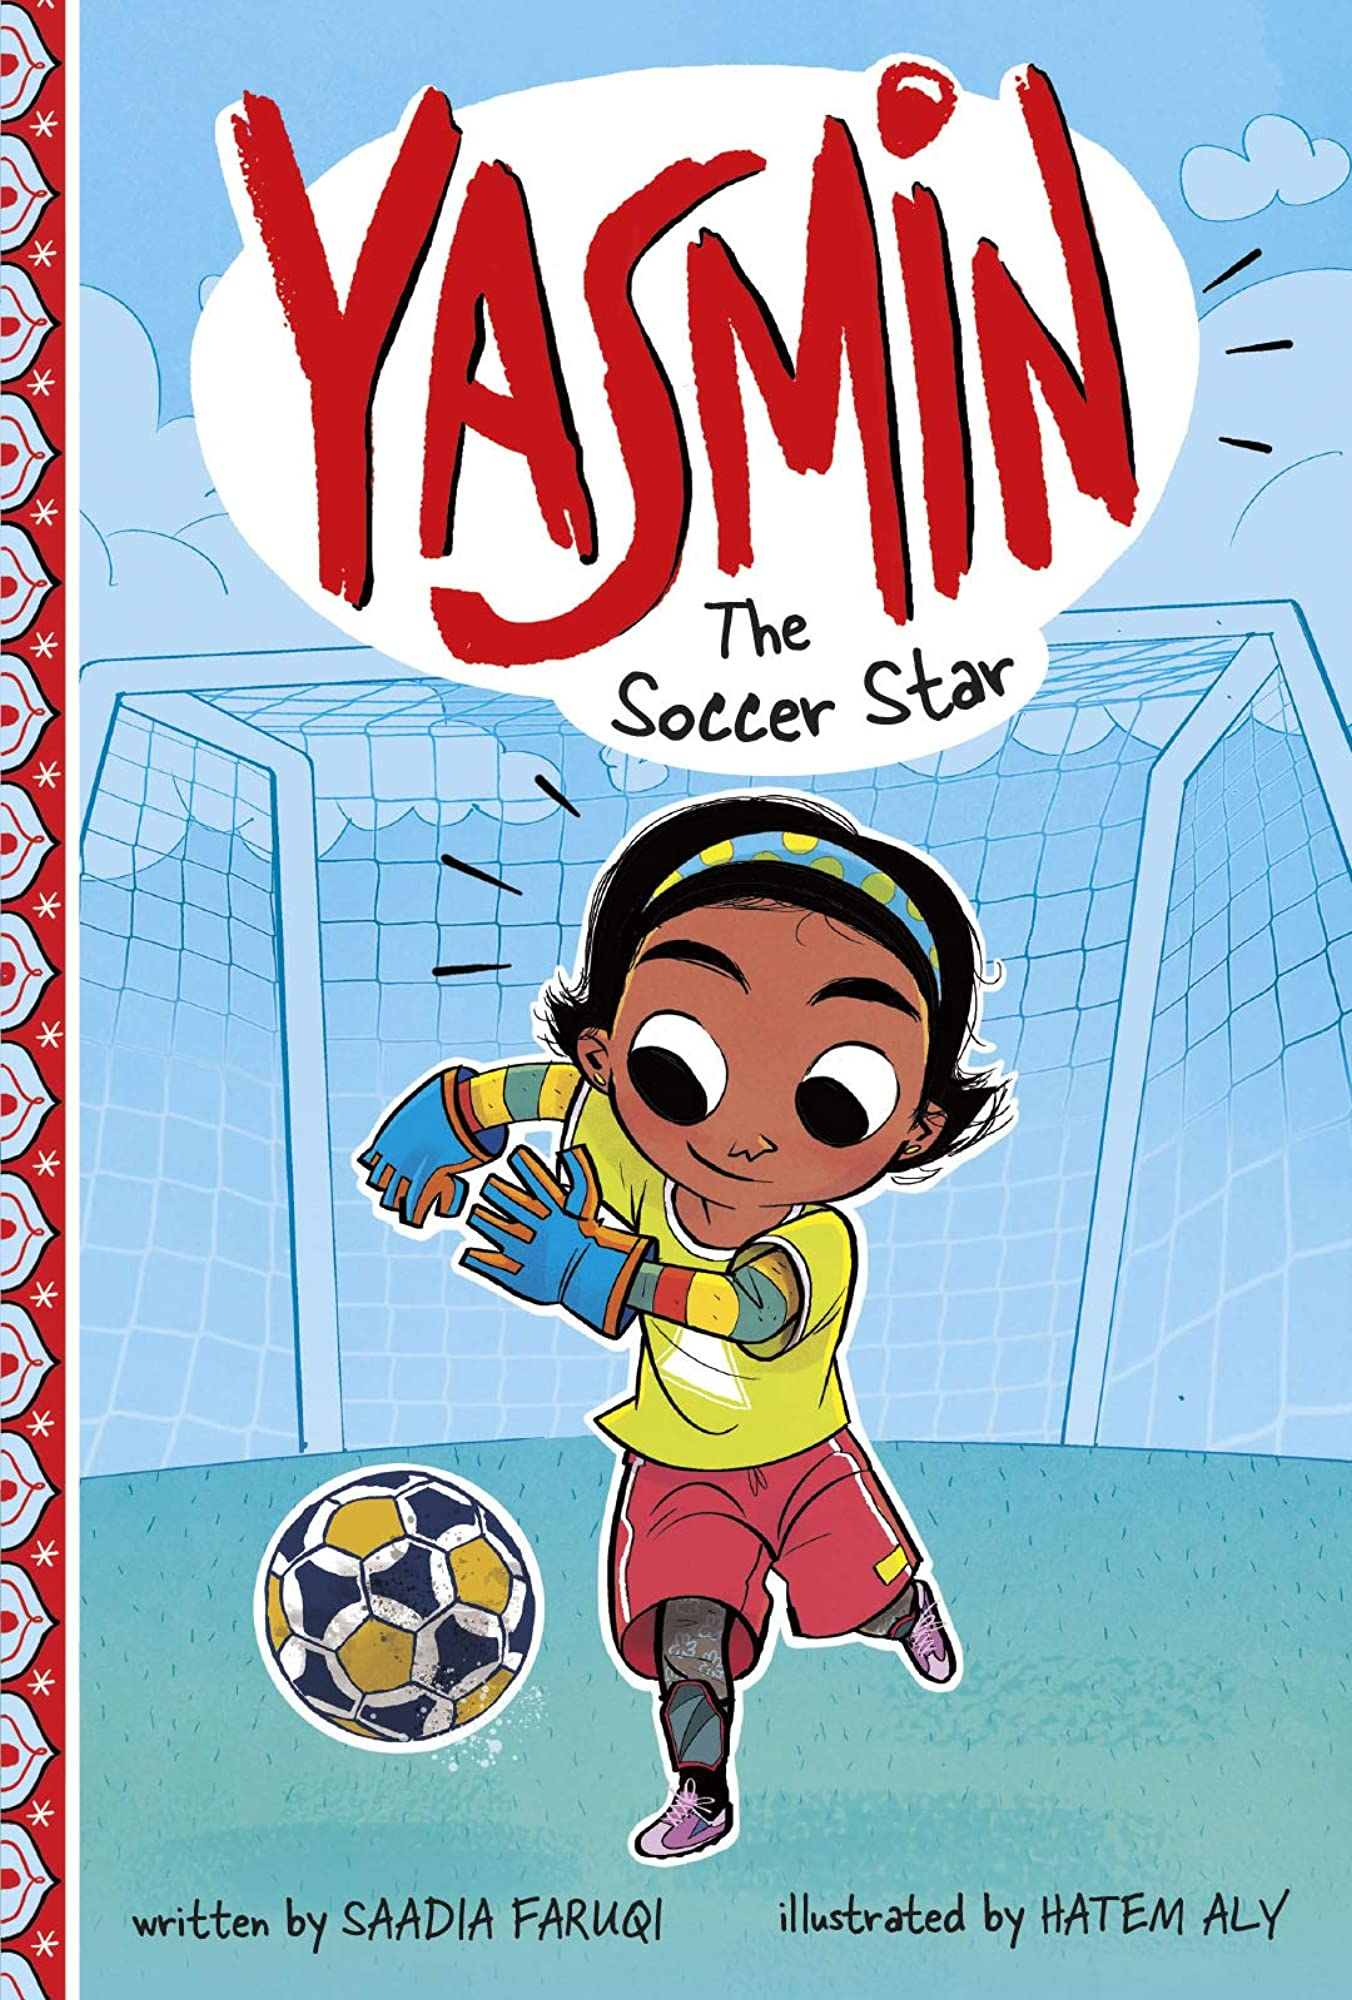 Yasmin: The Soccer Star by Saadia Faruqi